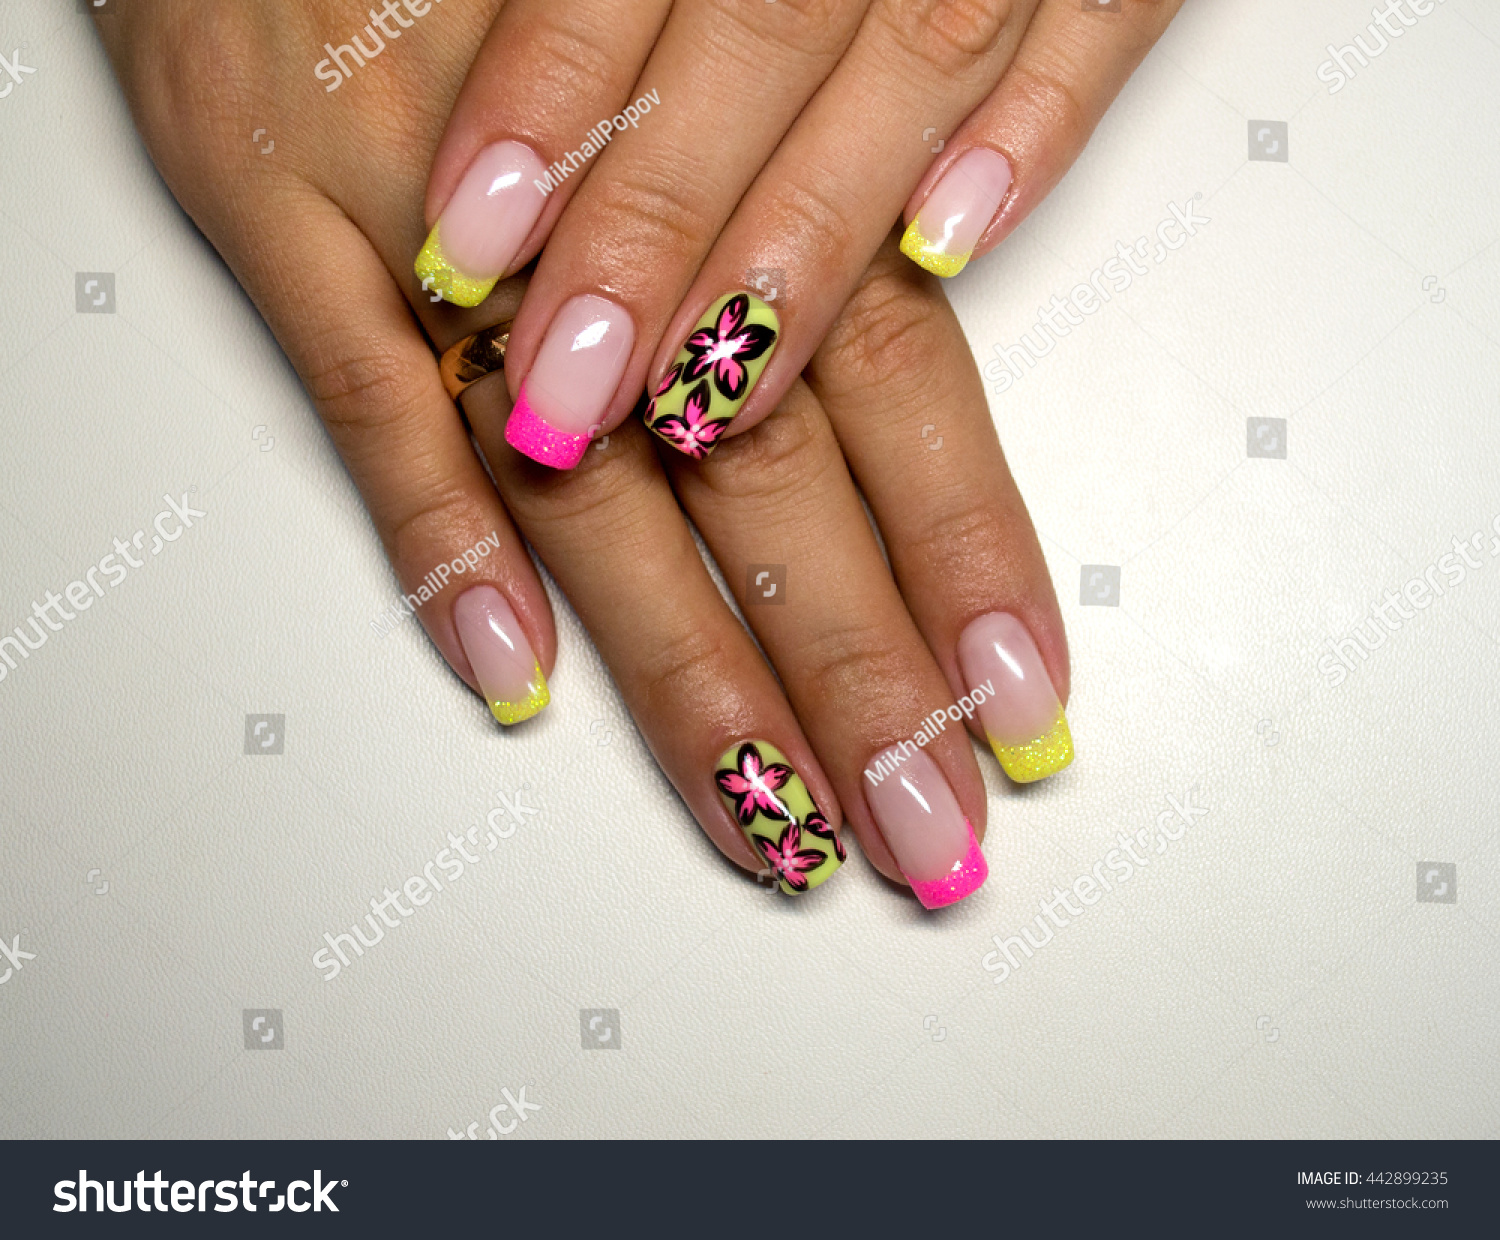 French Manicure Nail Color Painted Flower Stock Photo (Royalty Free ...